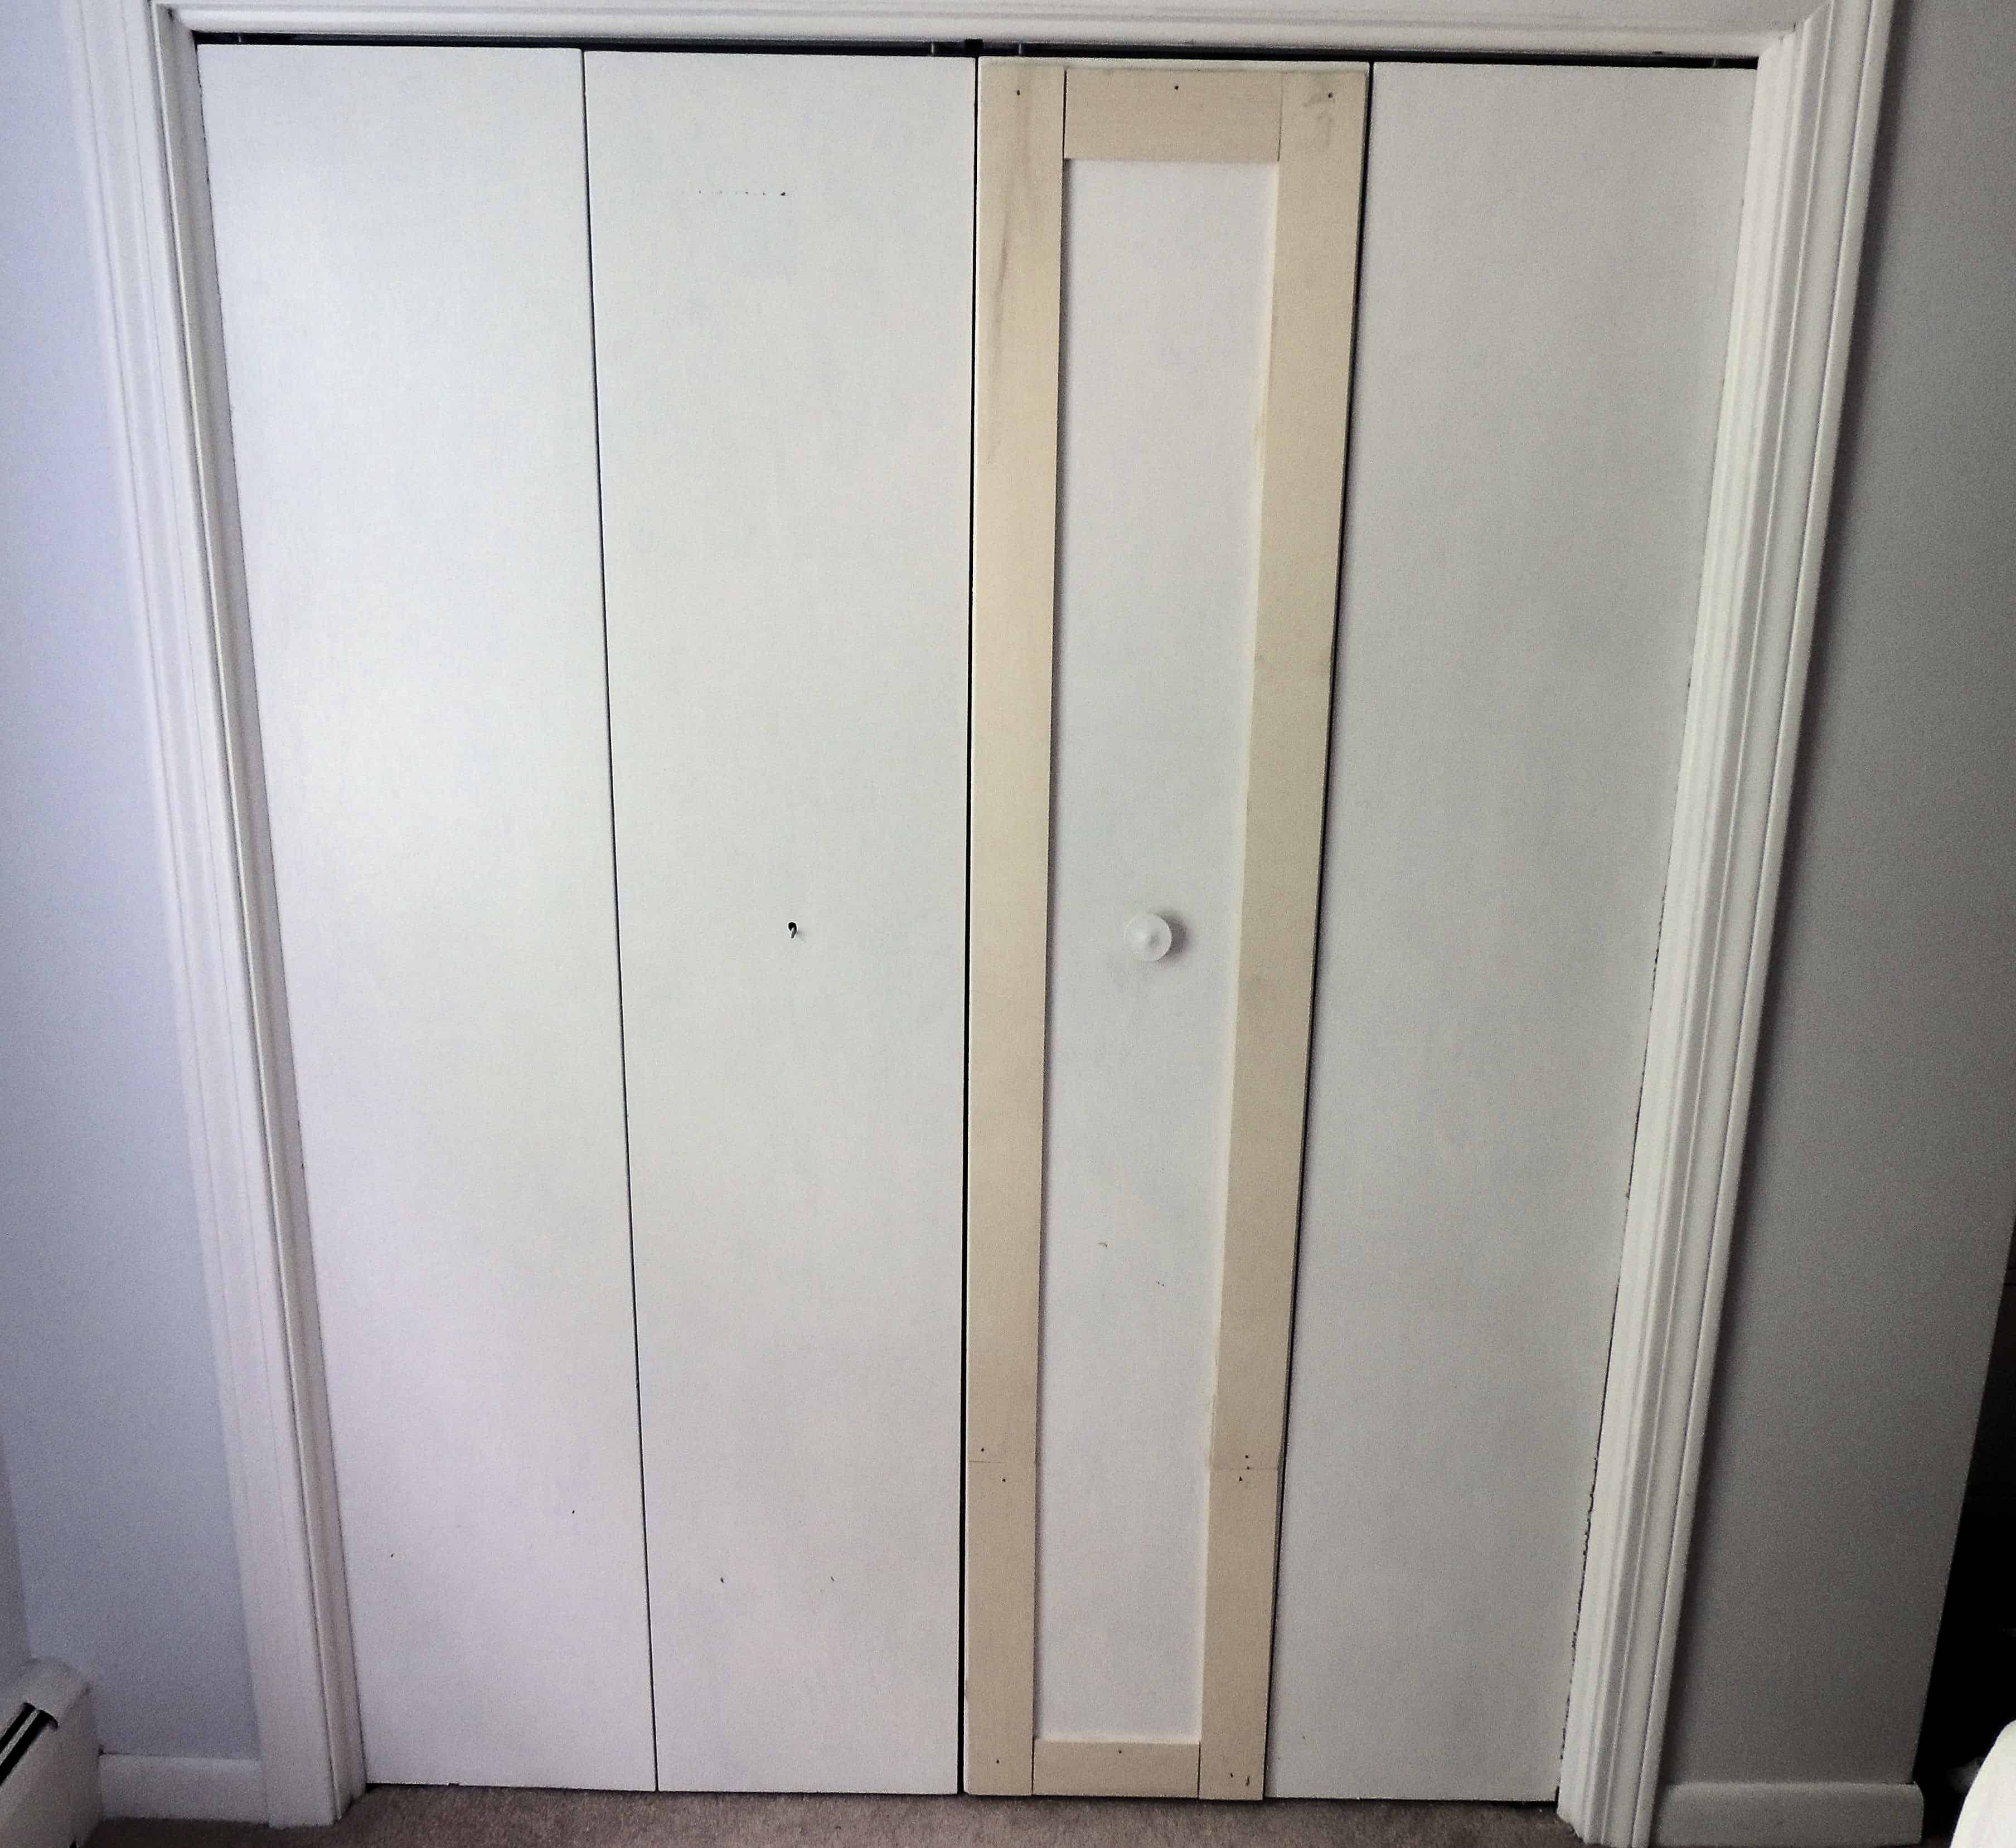 The basic frame is up - 2 vertical and 2 horizontal pieces on one door panel